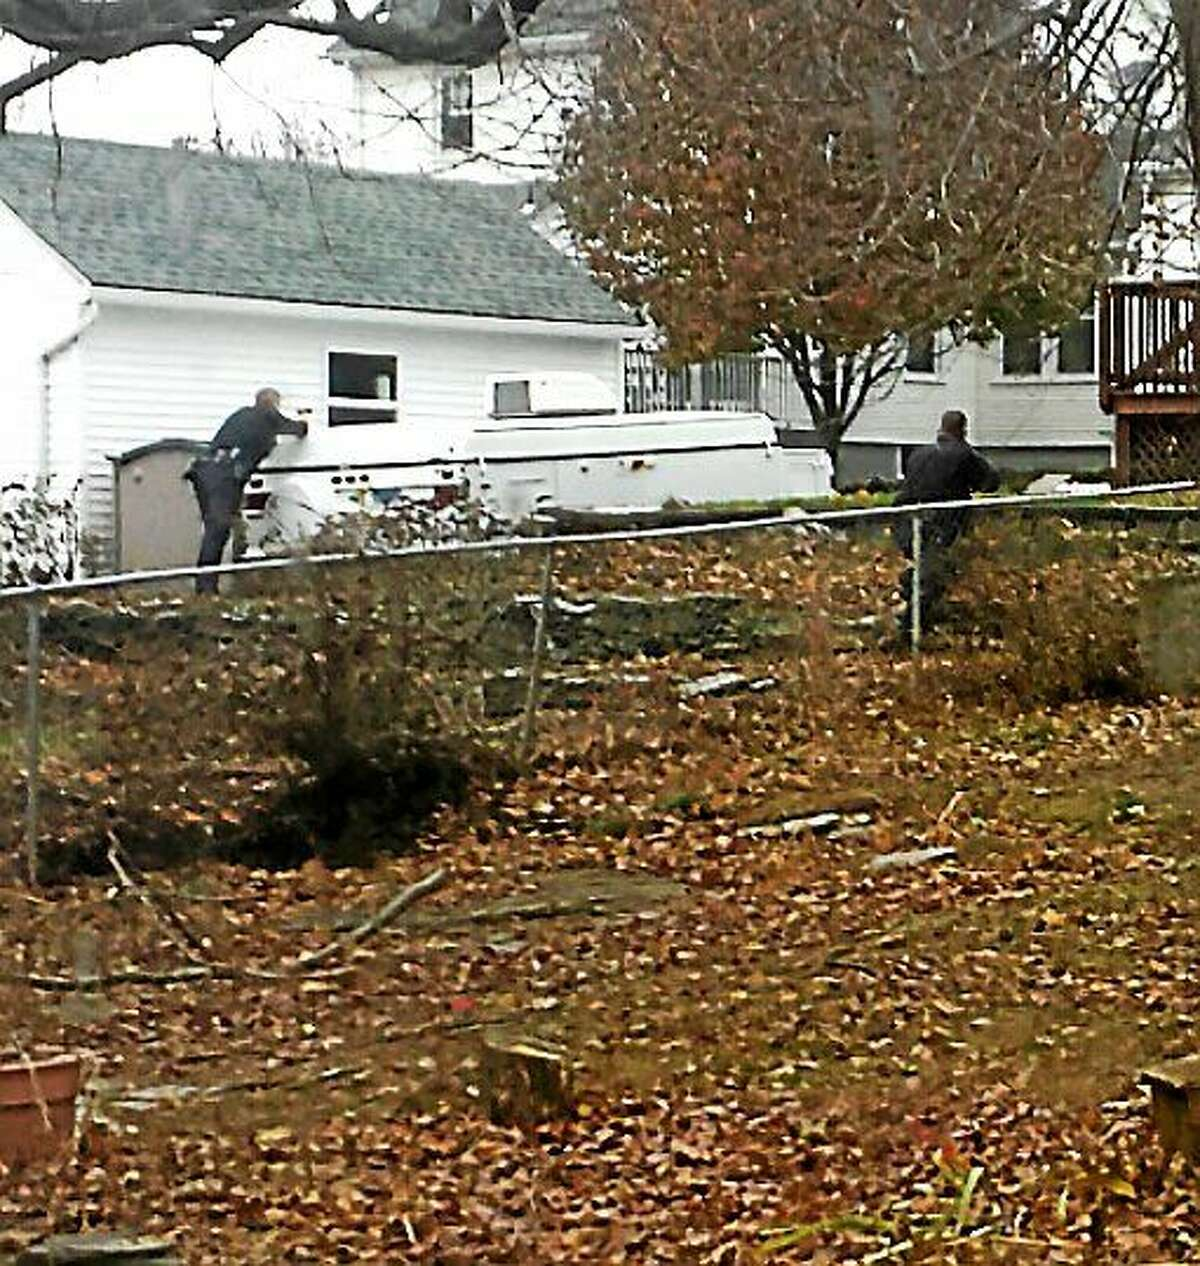 West Haven officers, with at least one gun drawn, approach a house before a man led them on a chase Tuesday afternoon. Police have identified the man as Stephen Turtzo, who is a retired city police officer.